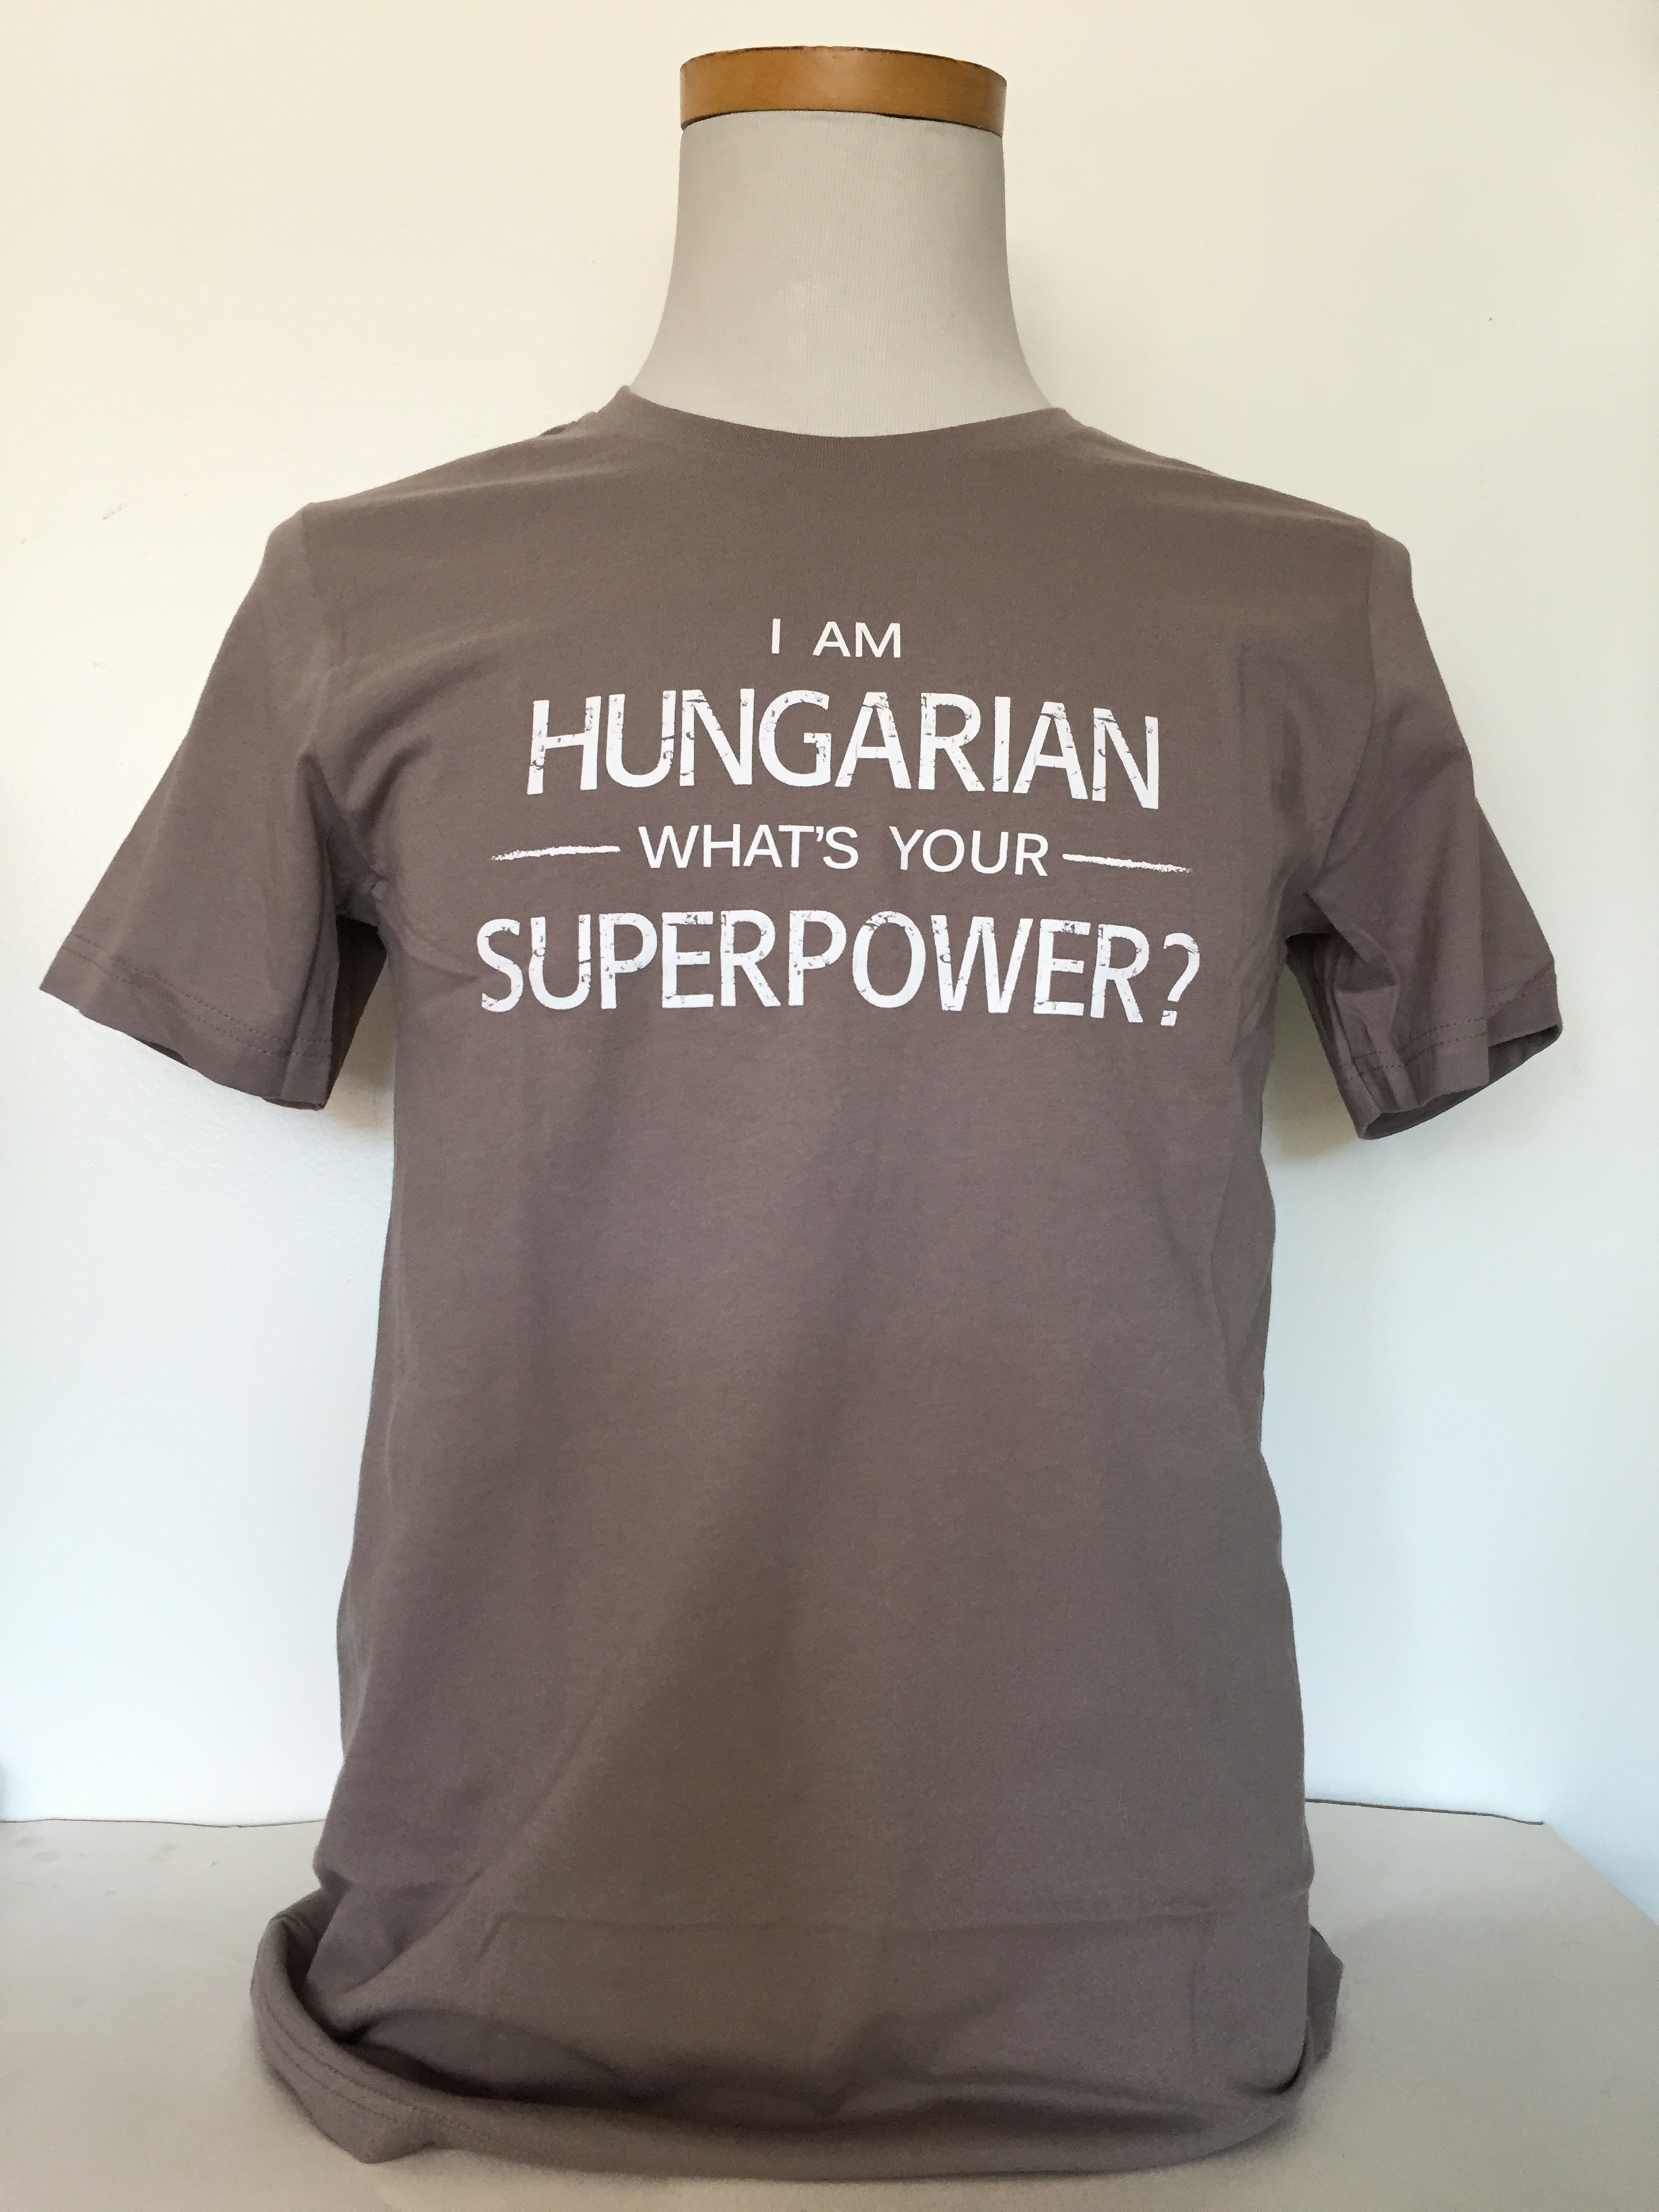 HungarianSuperpower